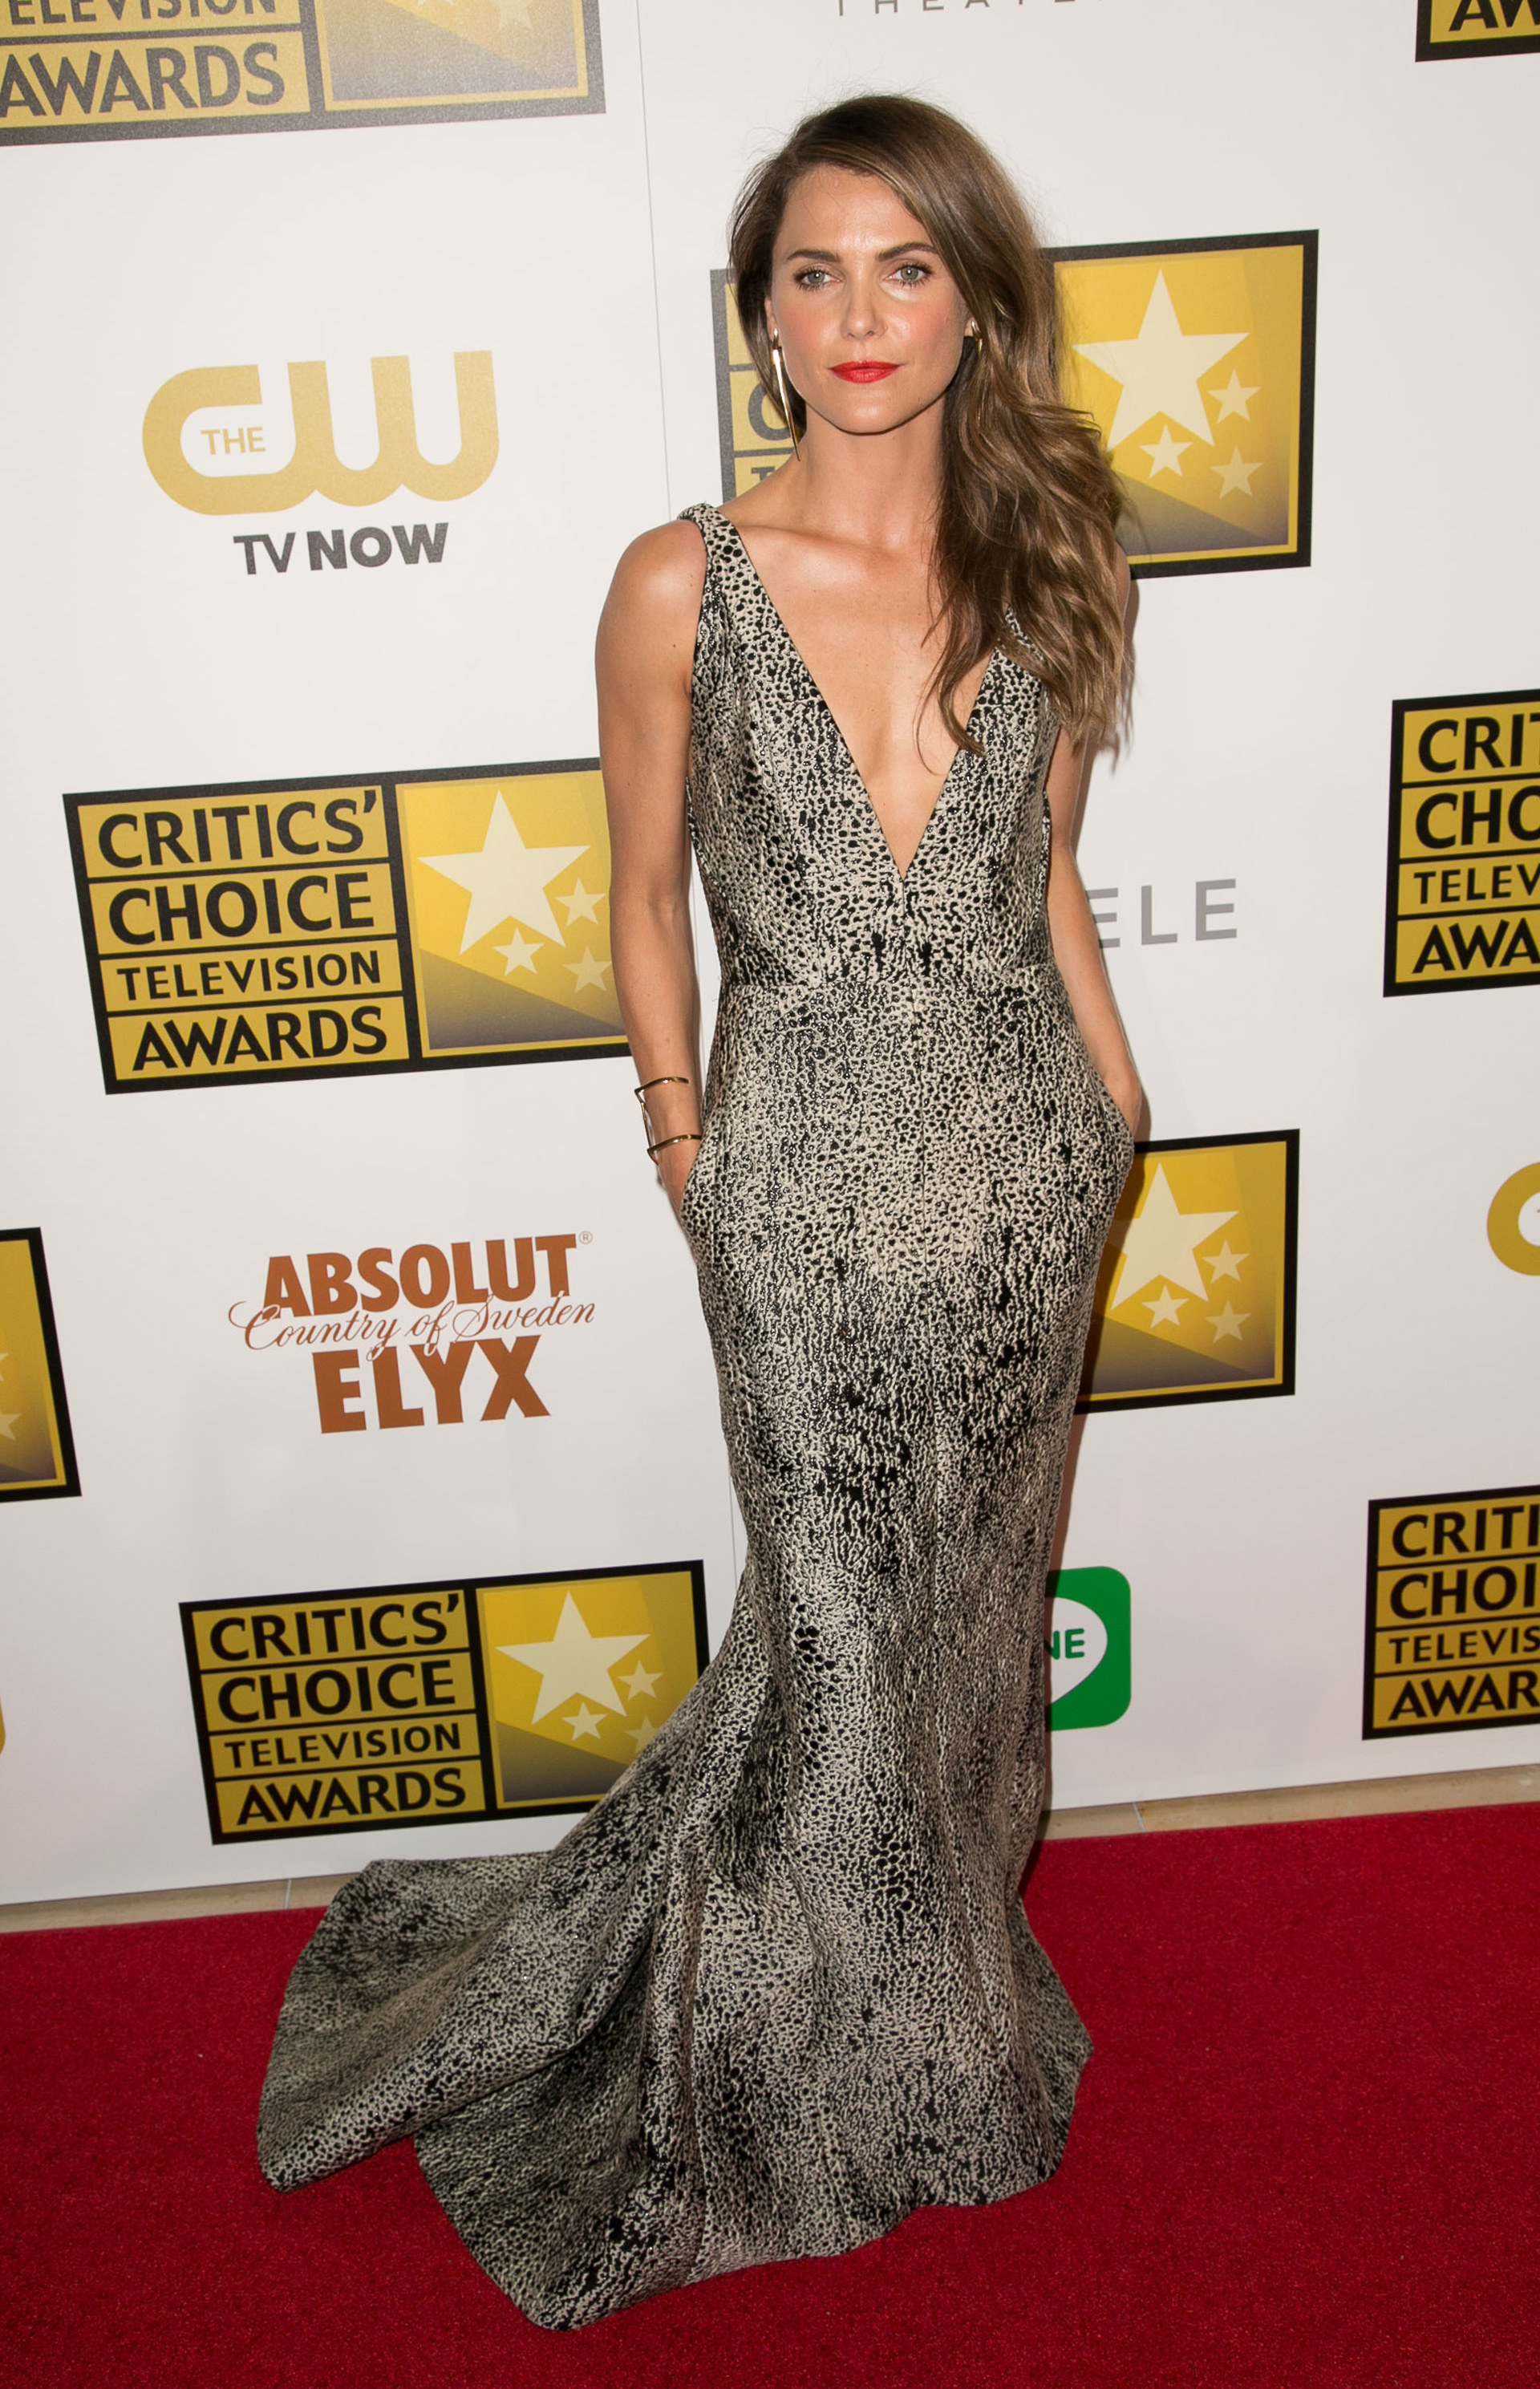 Keri Russell at the Critic's Choice Awards